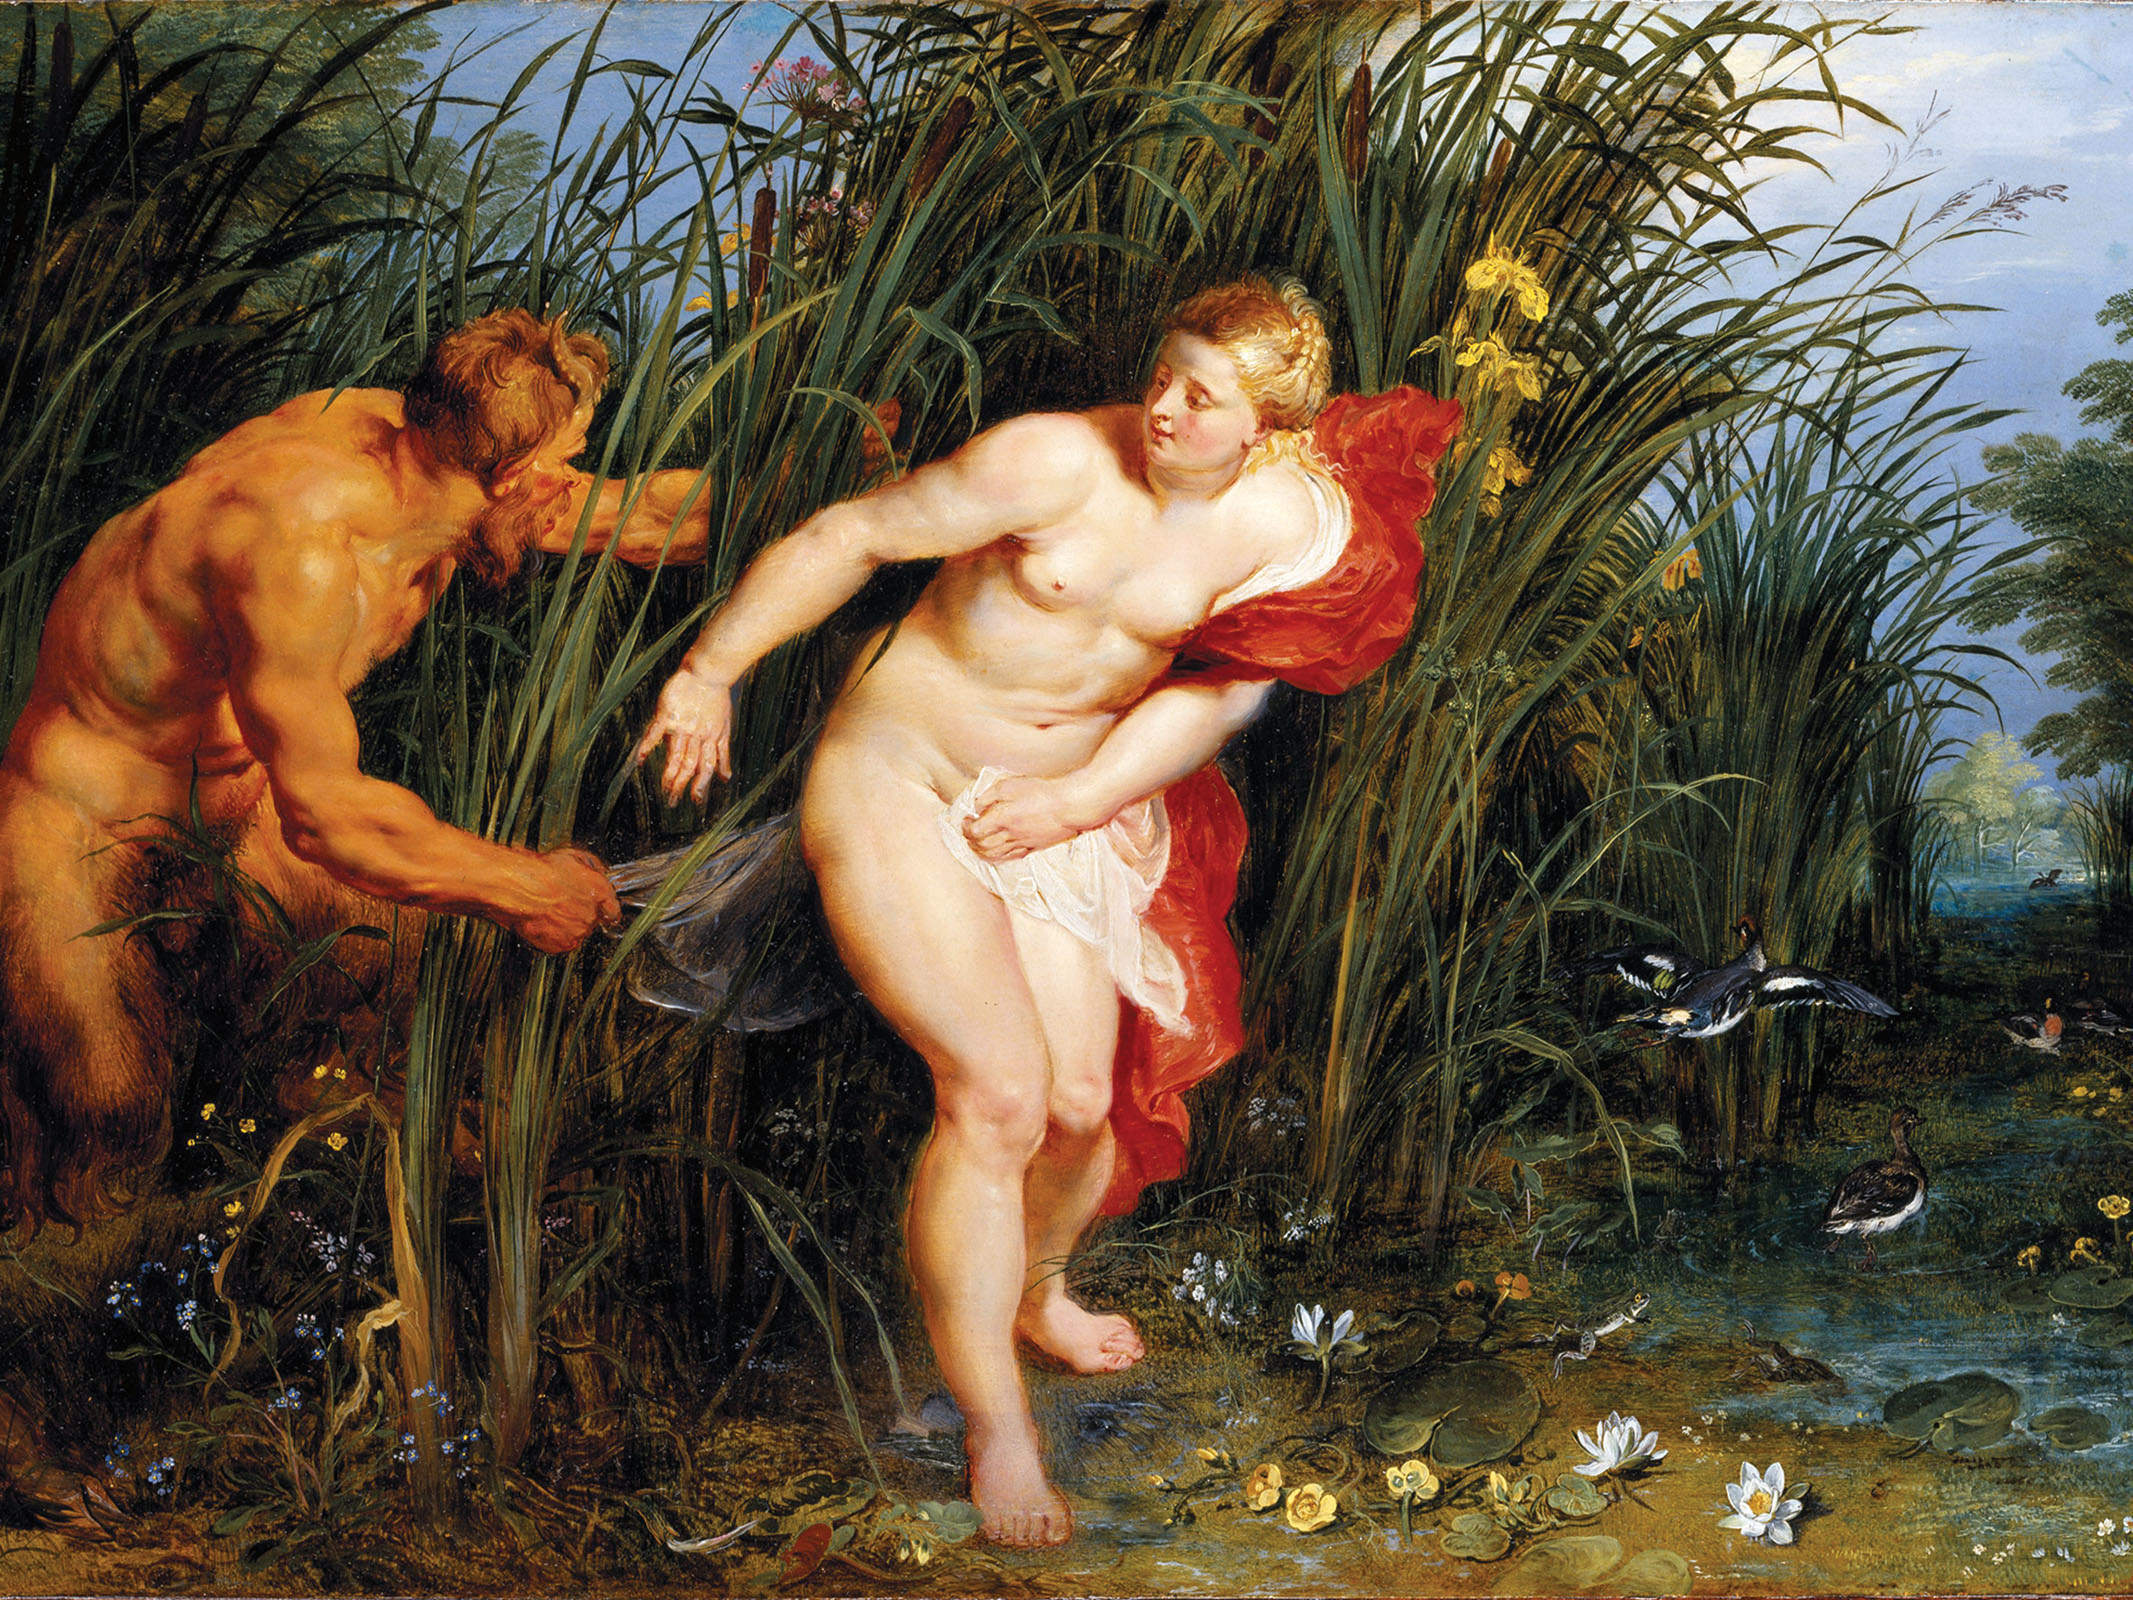 Hollywood hokum: Rubens only shone when he showed some restraint